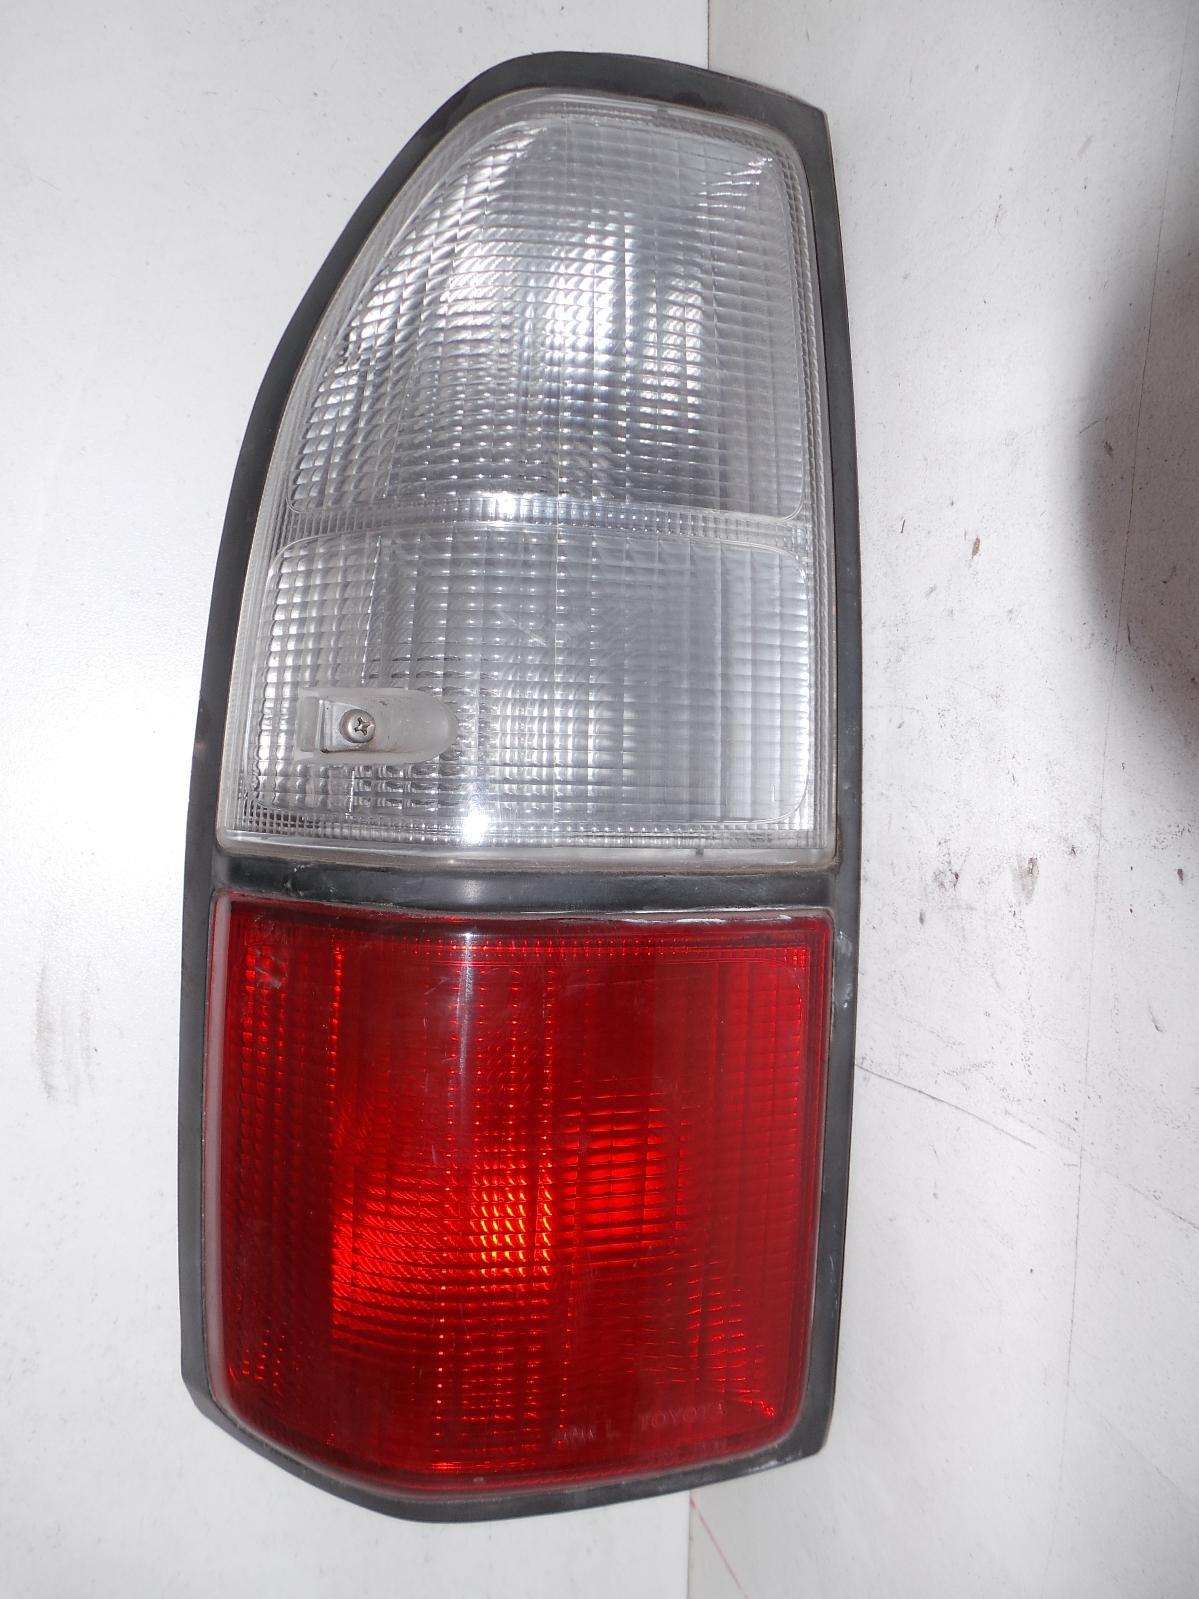 TOYOTA PRADO, Left Taillight, 95 SERIES, IN BODY, 08/99-01/03